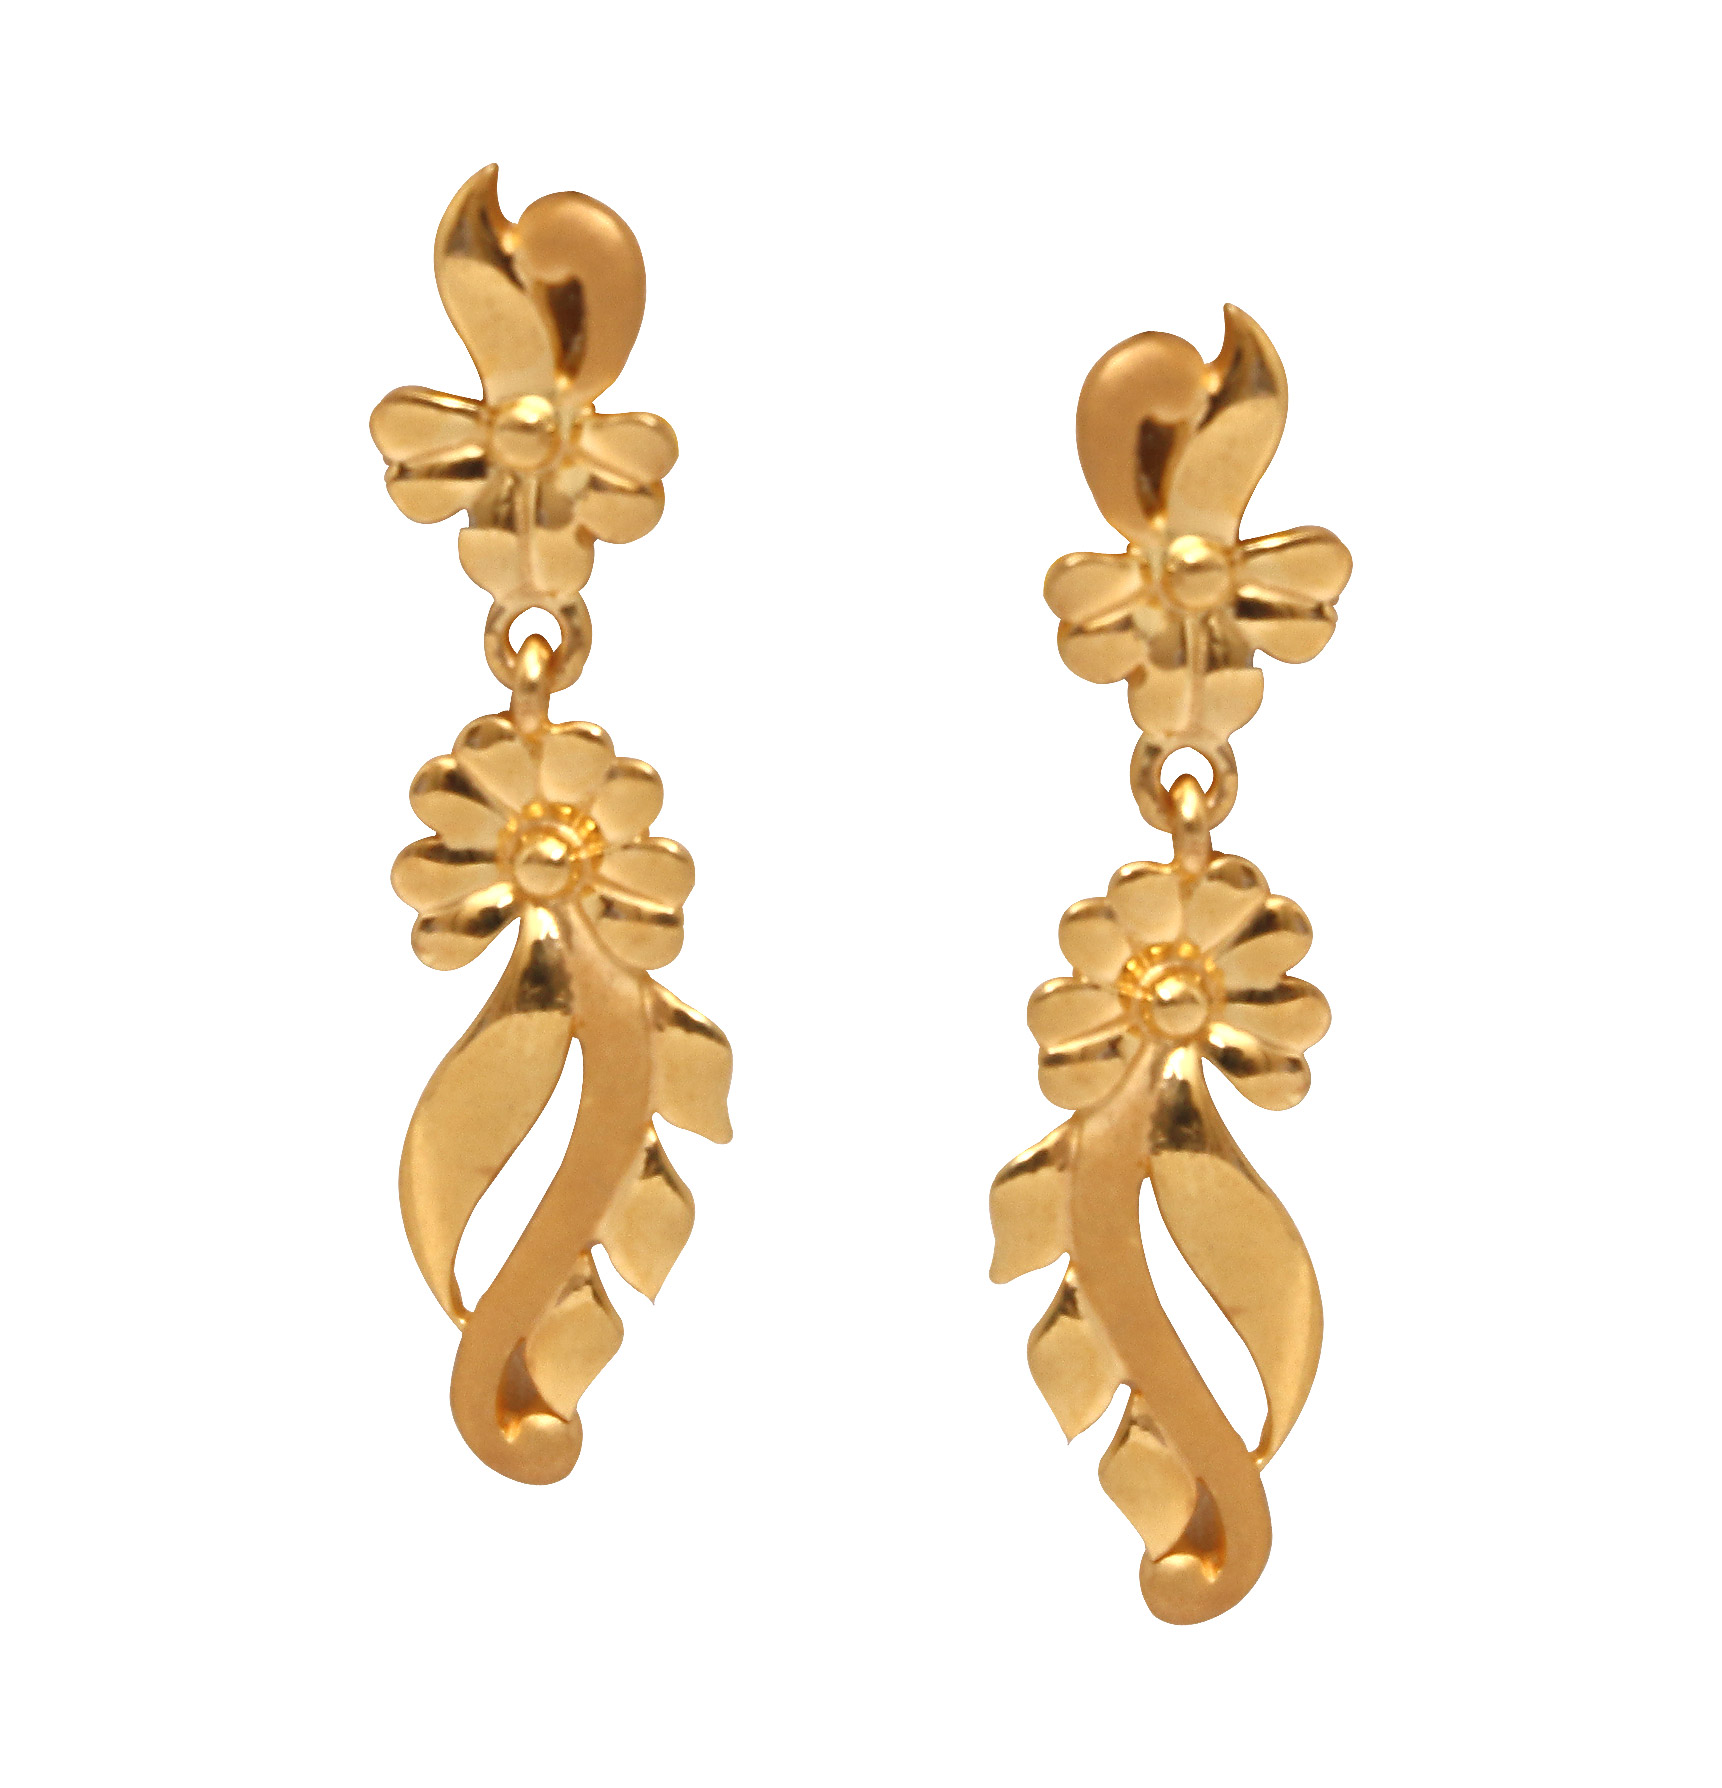 The Keira Stylus Gold Earrings